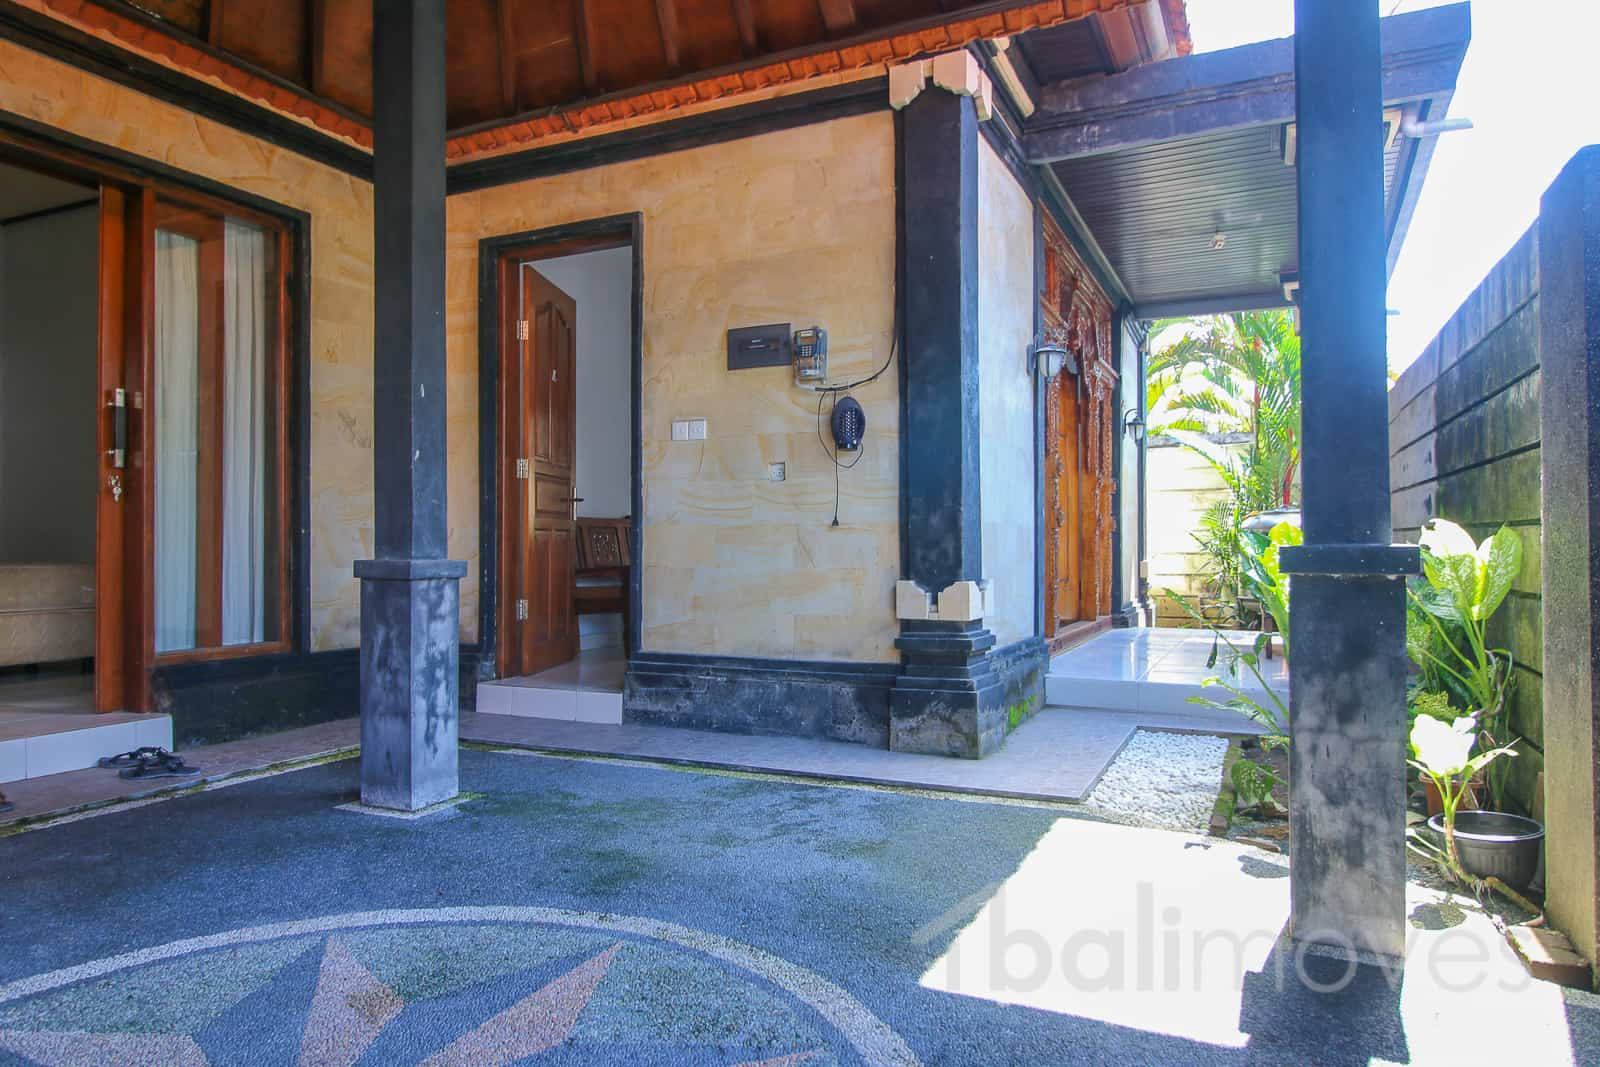 Two Bedroom Villa With Semi Furnished Sanur 39 S Local